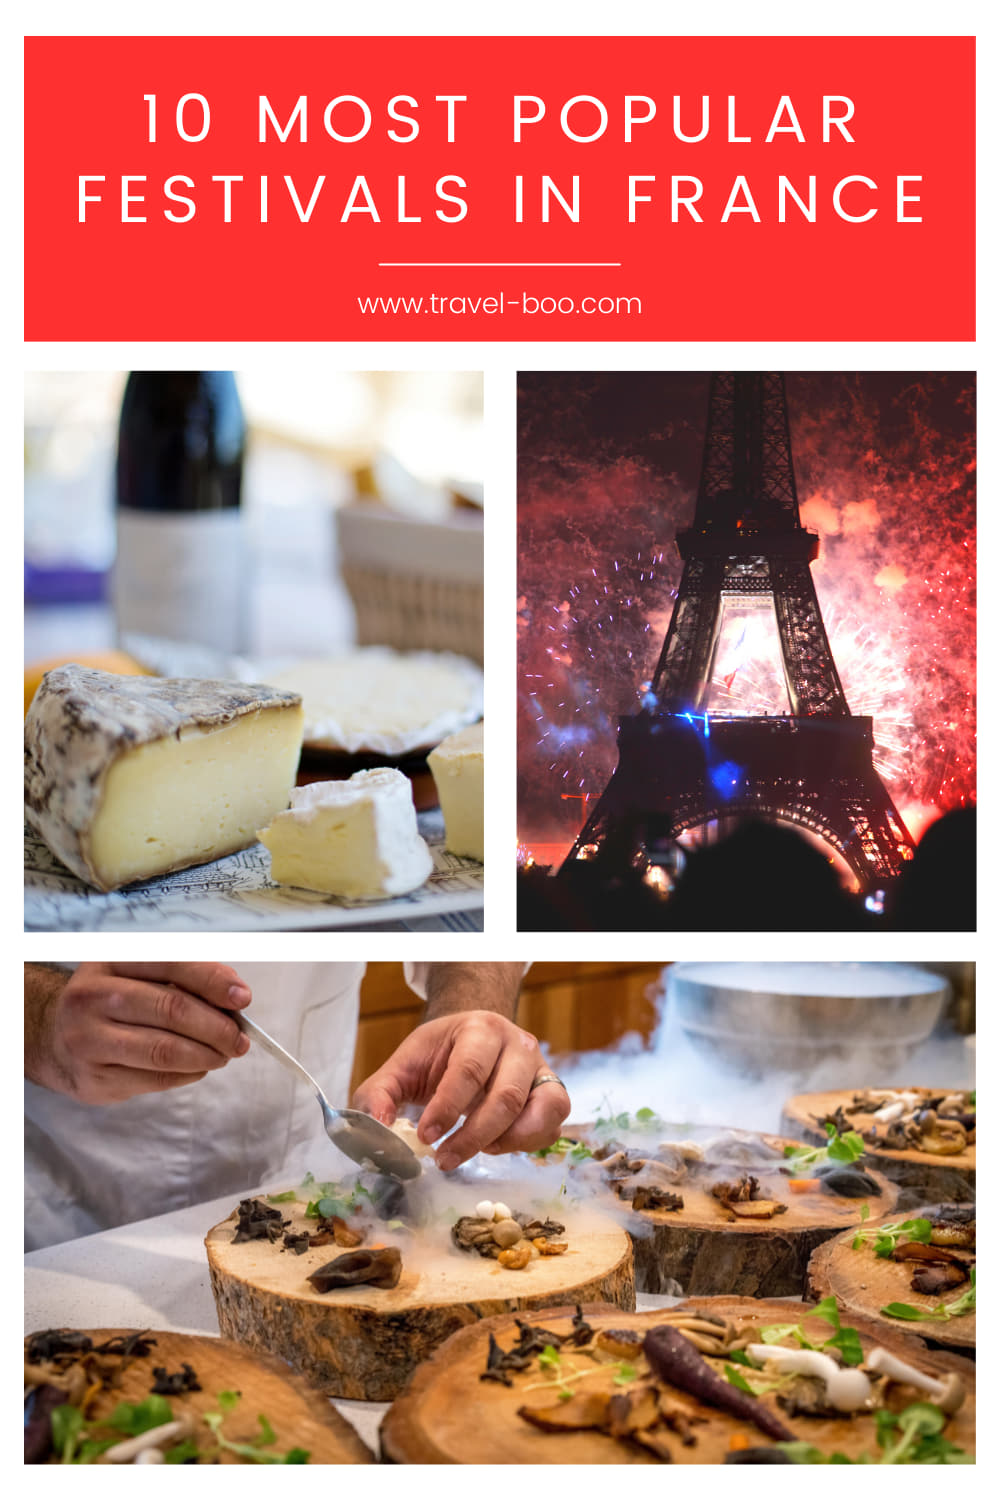 10 Most Popular French Celebrations & Festivals! French Festivals, Events in France, Celebrations in France, France Festivals, France Travel Guide, France Travel Itinerary